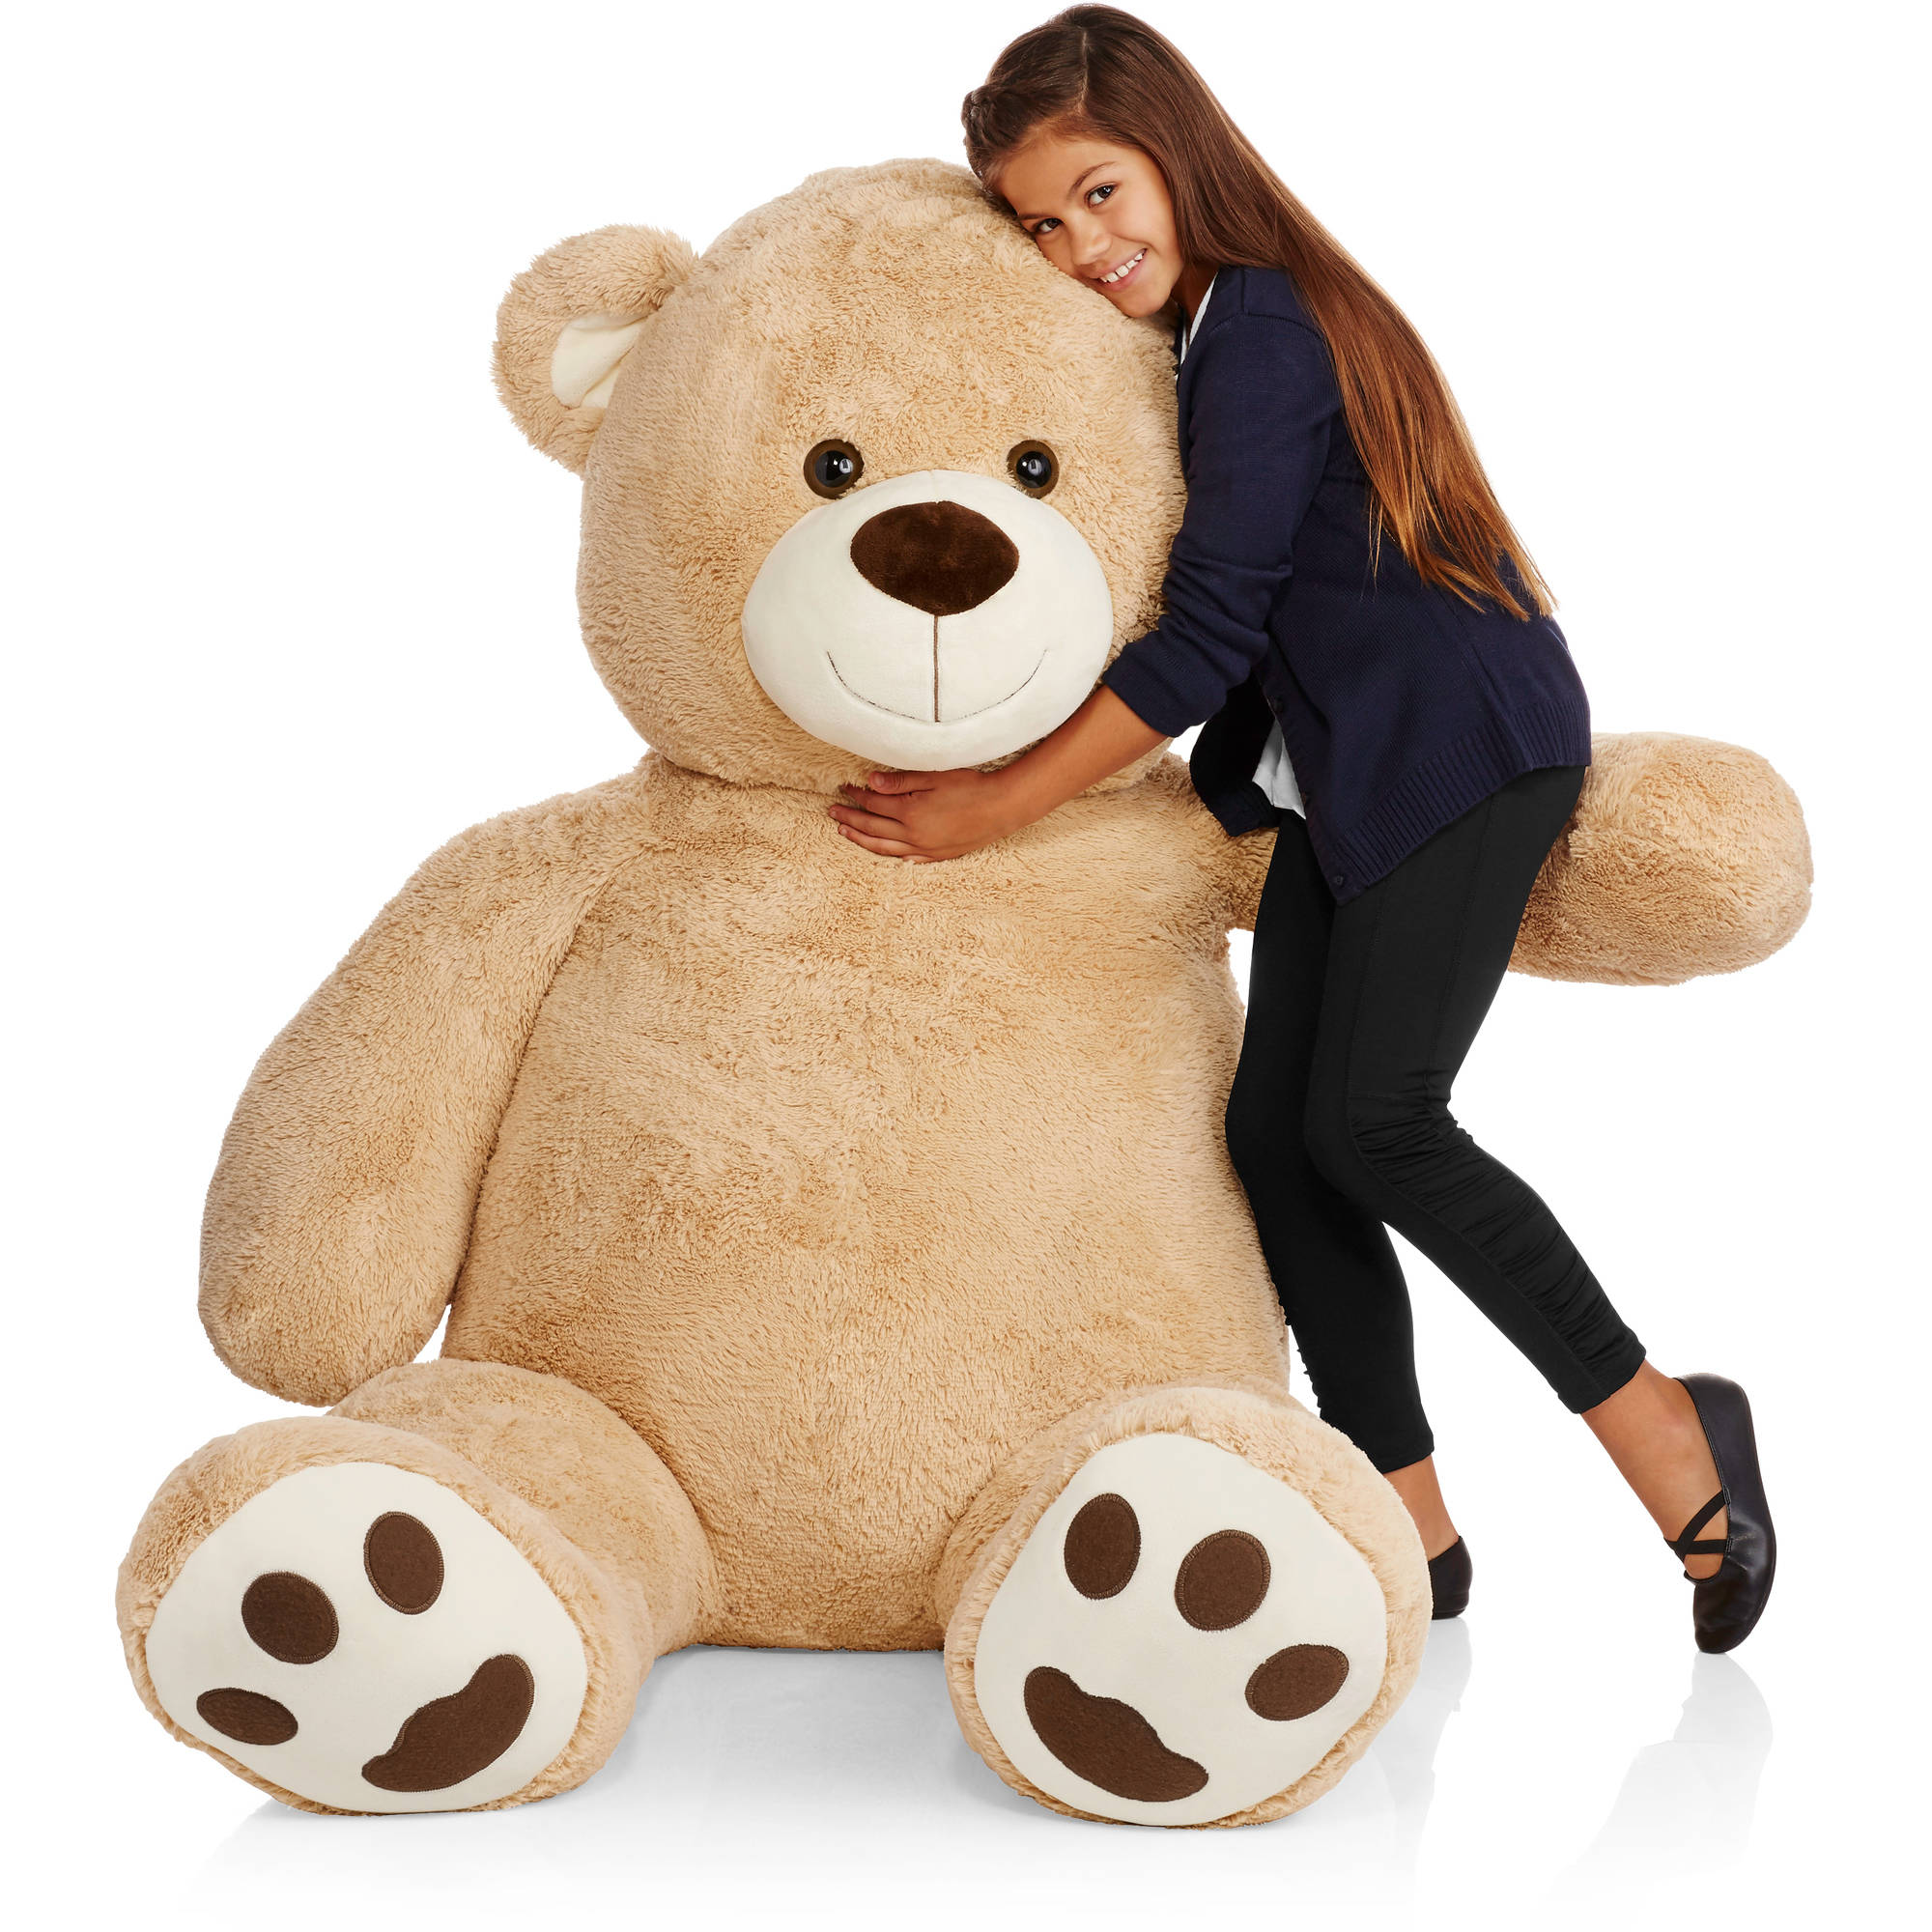 Giant Teddy Bear Walmart